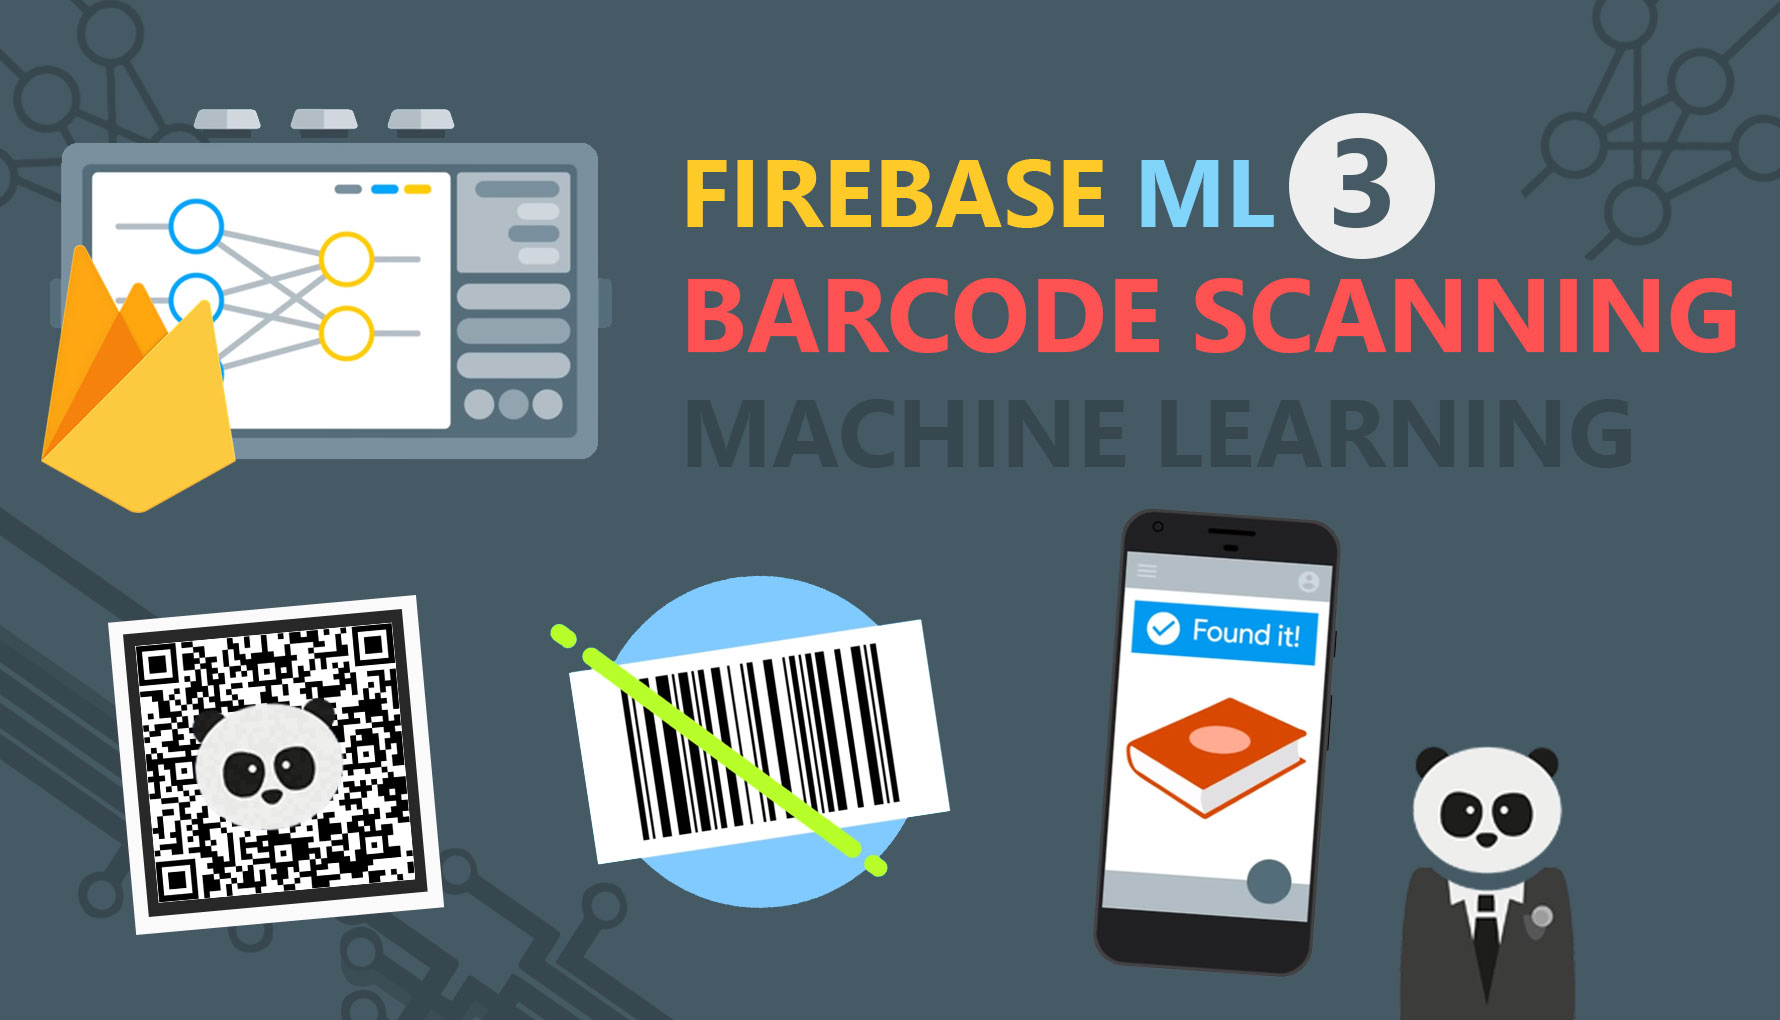 Firebase ML Kit 3: Barcode Scanning